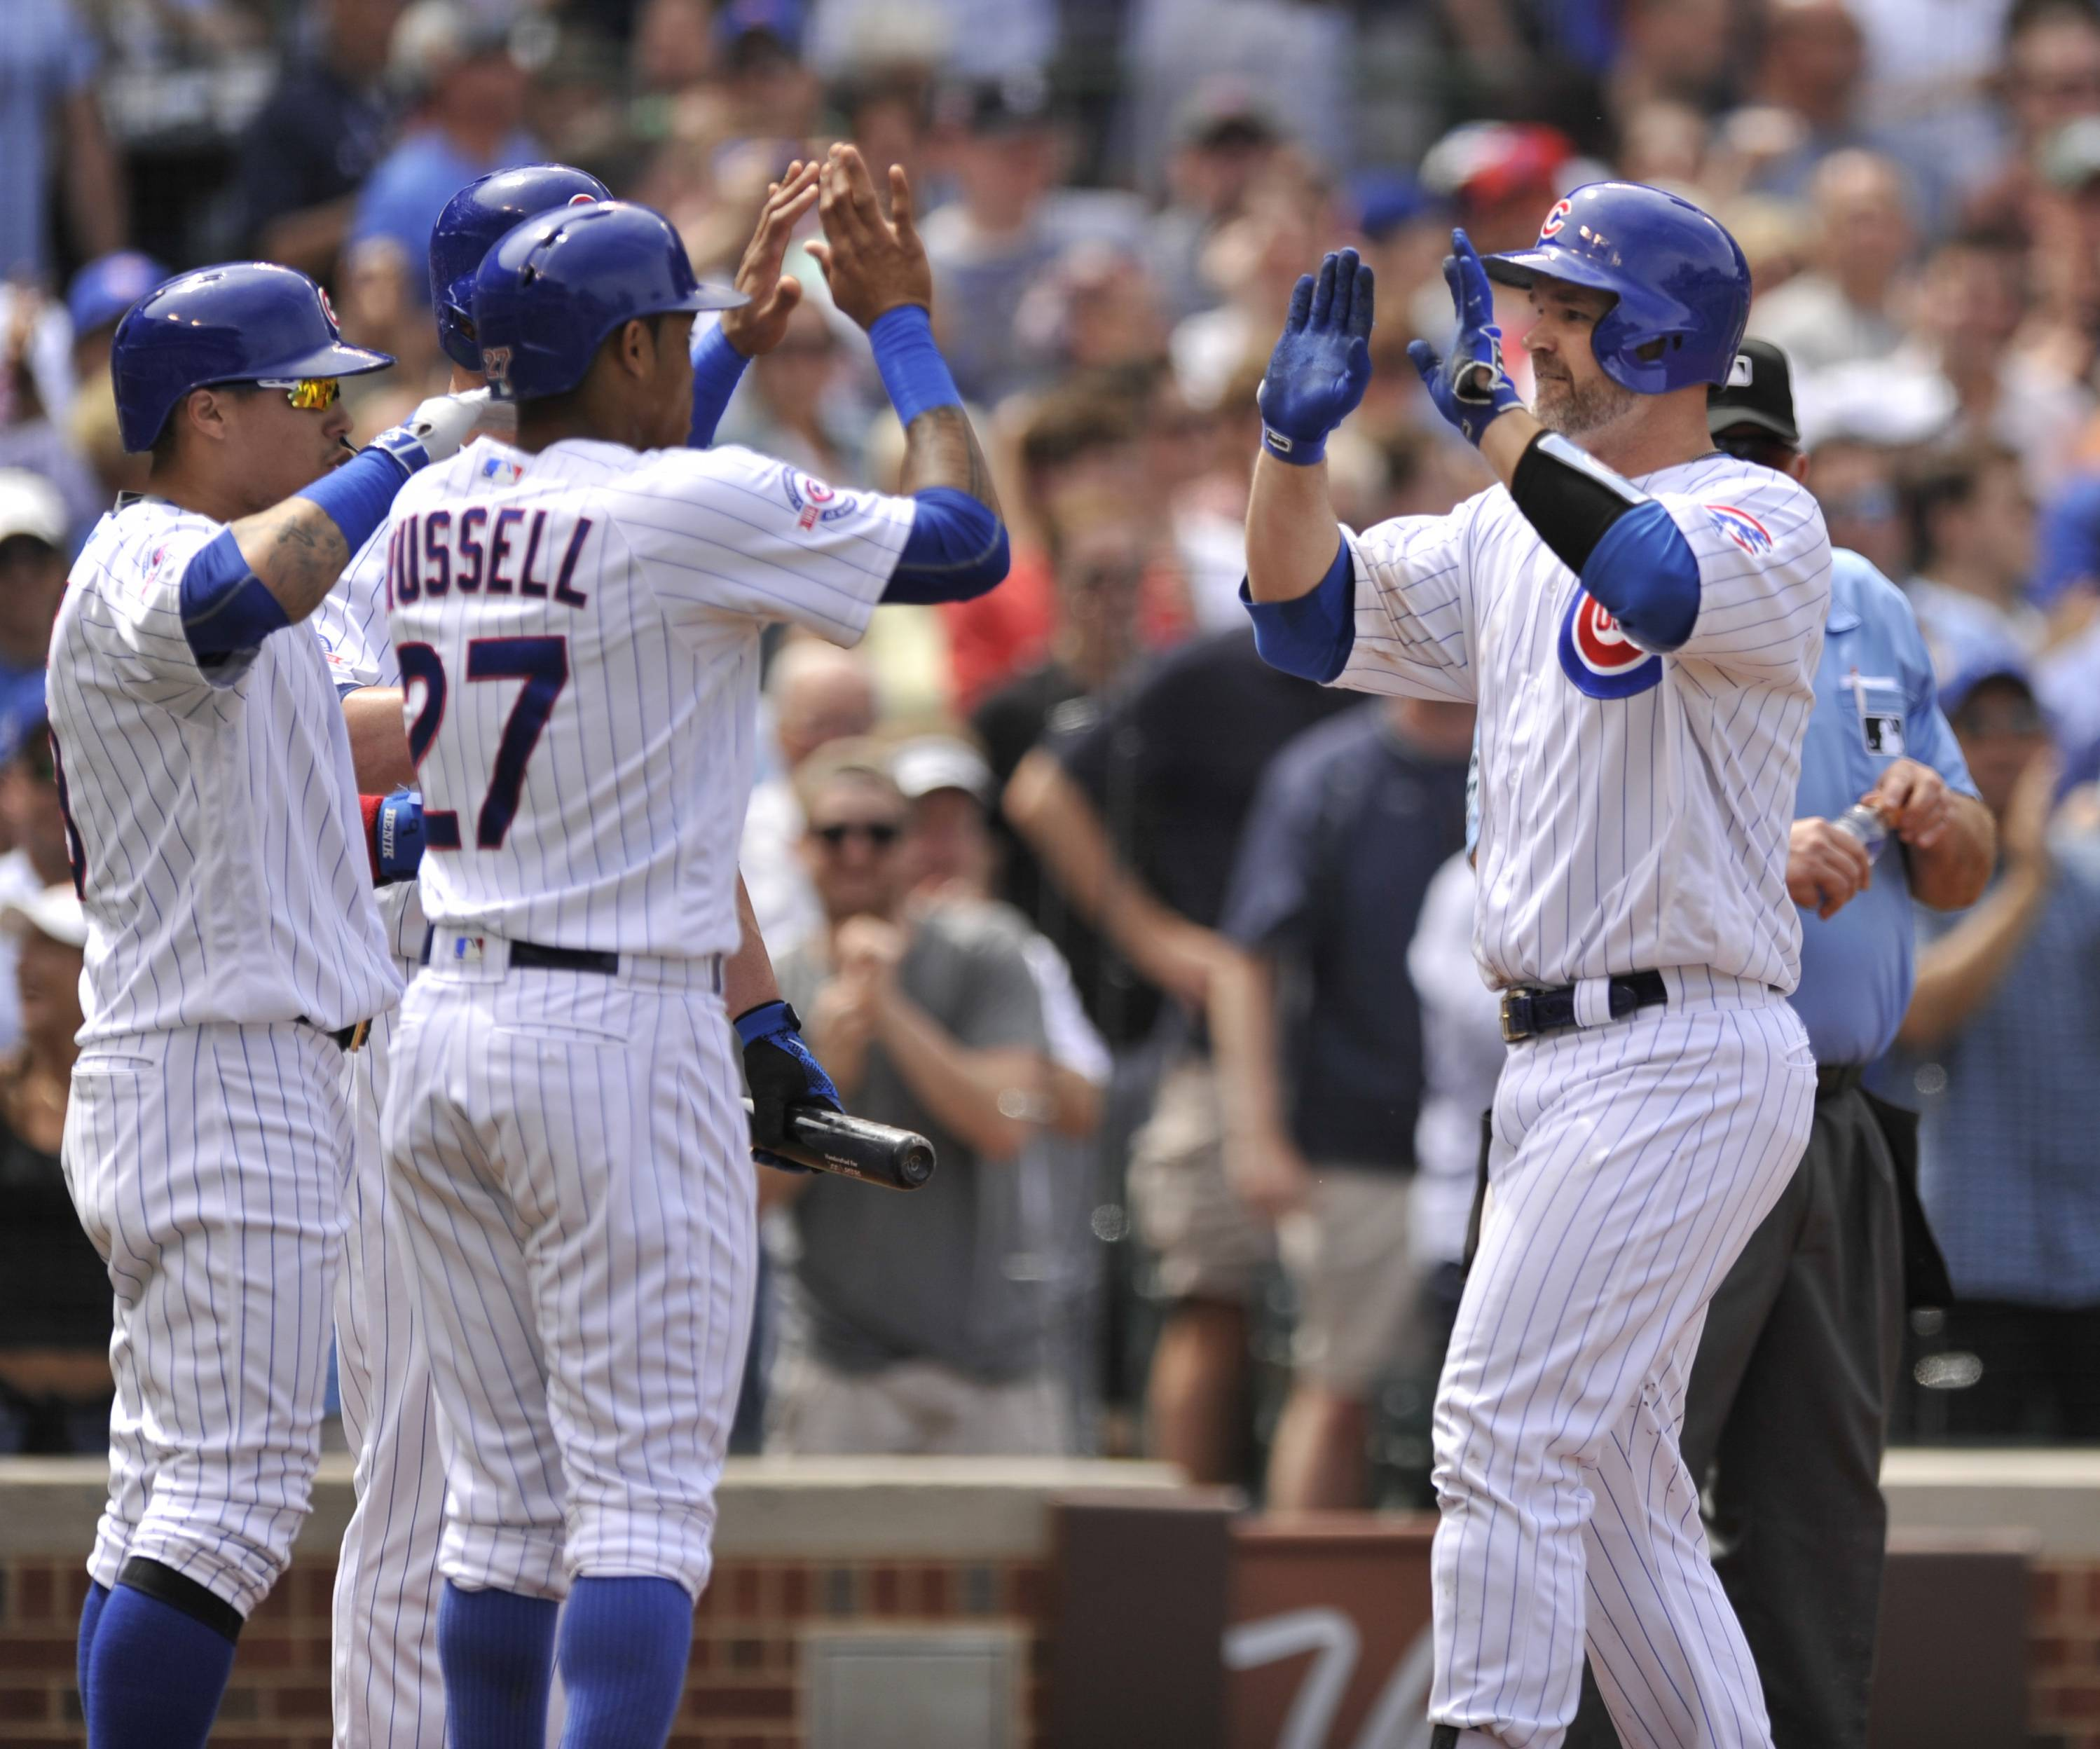 Chicago Cubs' David Ross right, celebrates with teammates Addison Russell, Javier Baez left, and Jon Lester, at home plate after hitting a three-run home run during the fourth inning against the Philadelphia Phillies, Friday in Chicago. It was Ross' 100th career home run.